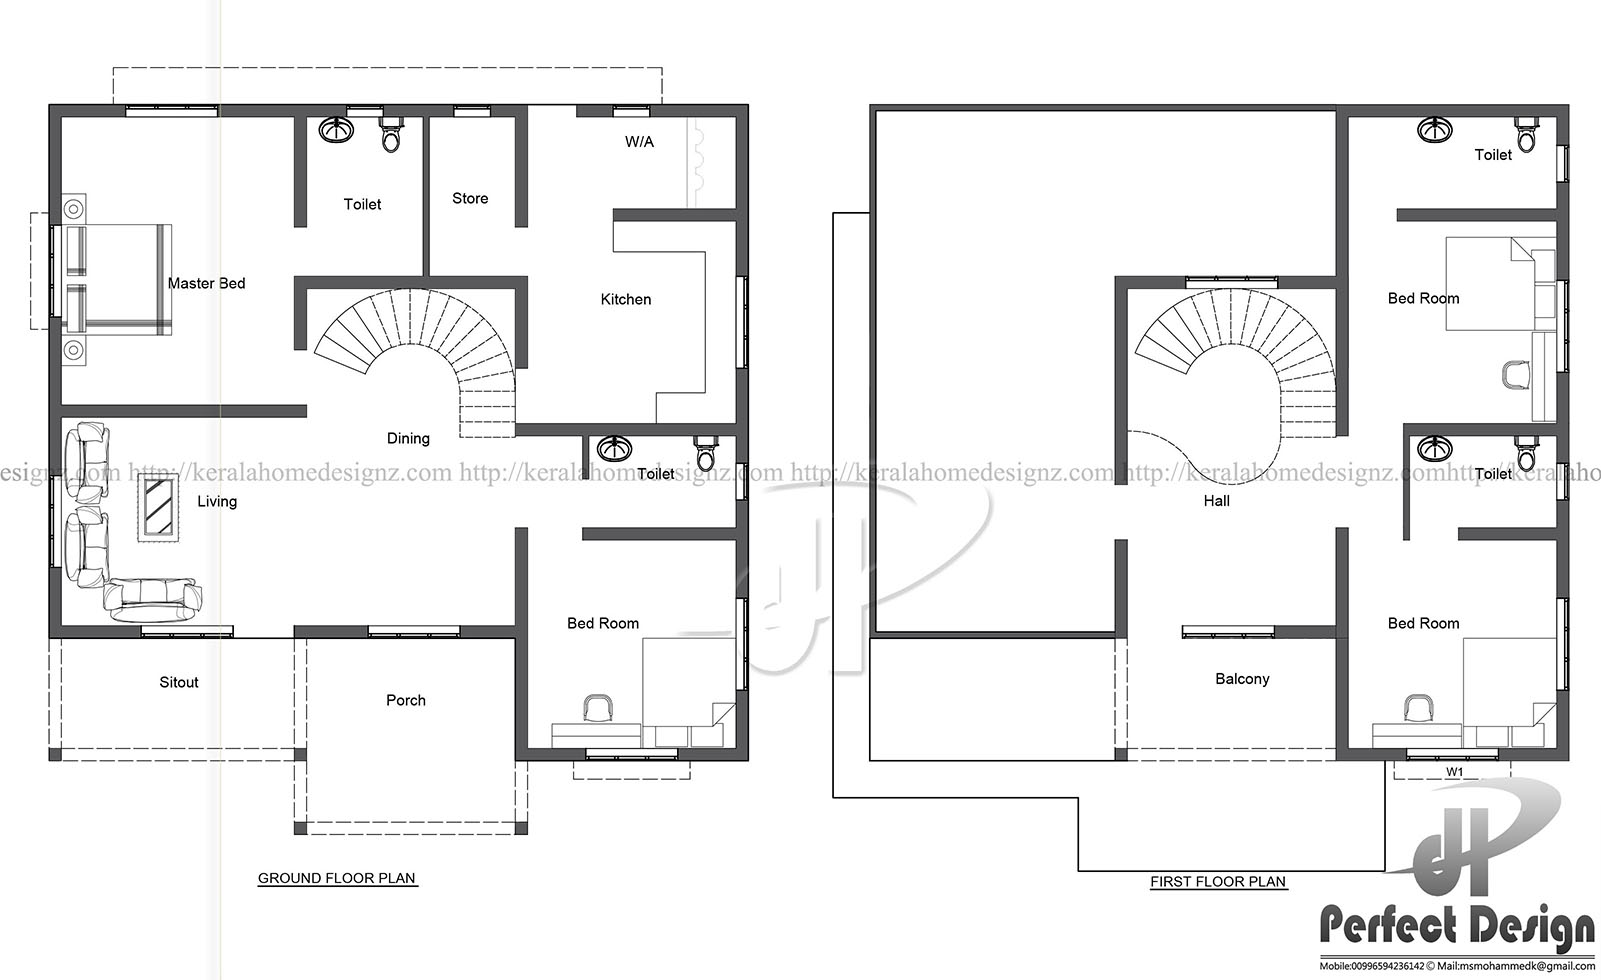 This plan is designed in a manner for the latest interior designs mixed roof ultra modern villa design layout